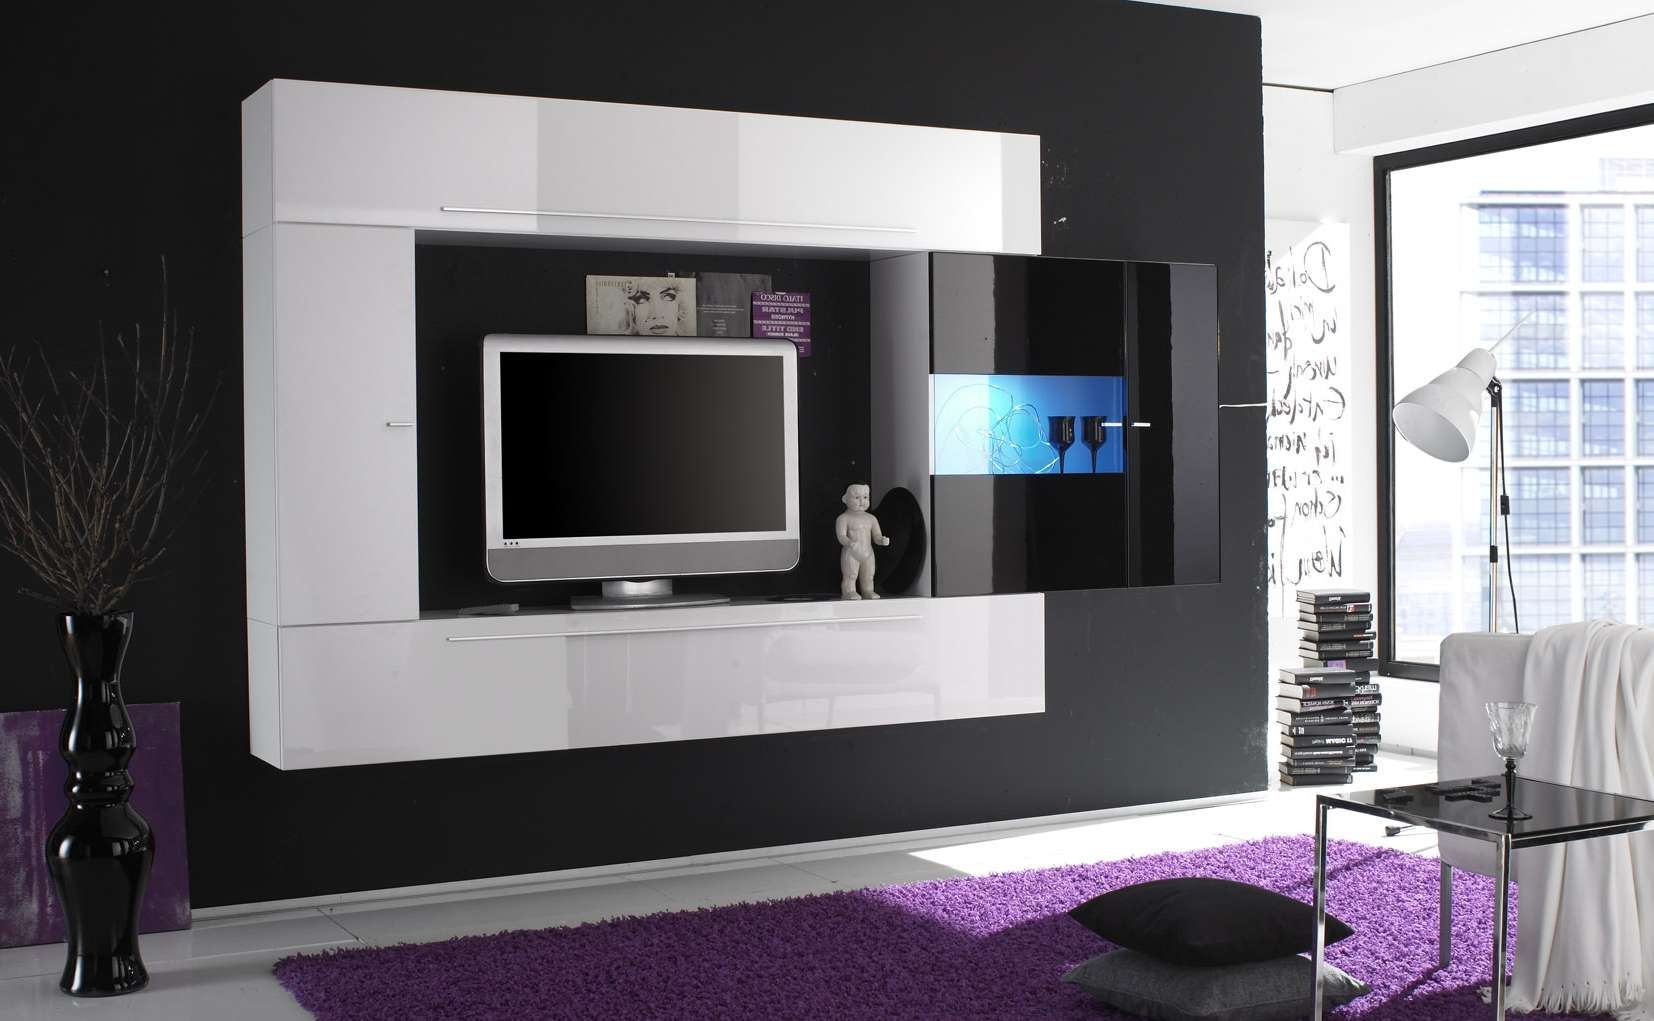 Modern Lcd Tv Cabinet Design Fancy Tv Panel Designs For Living With Regard To Fancy Tv Cabinets (View 11 of 20)